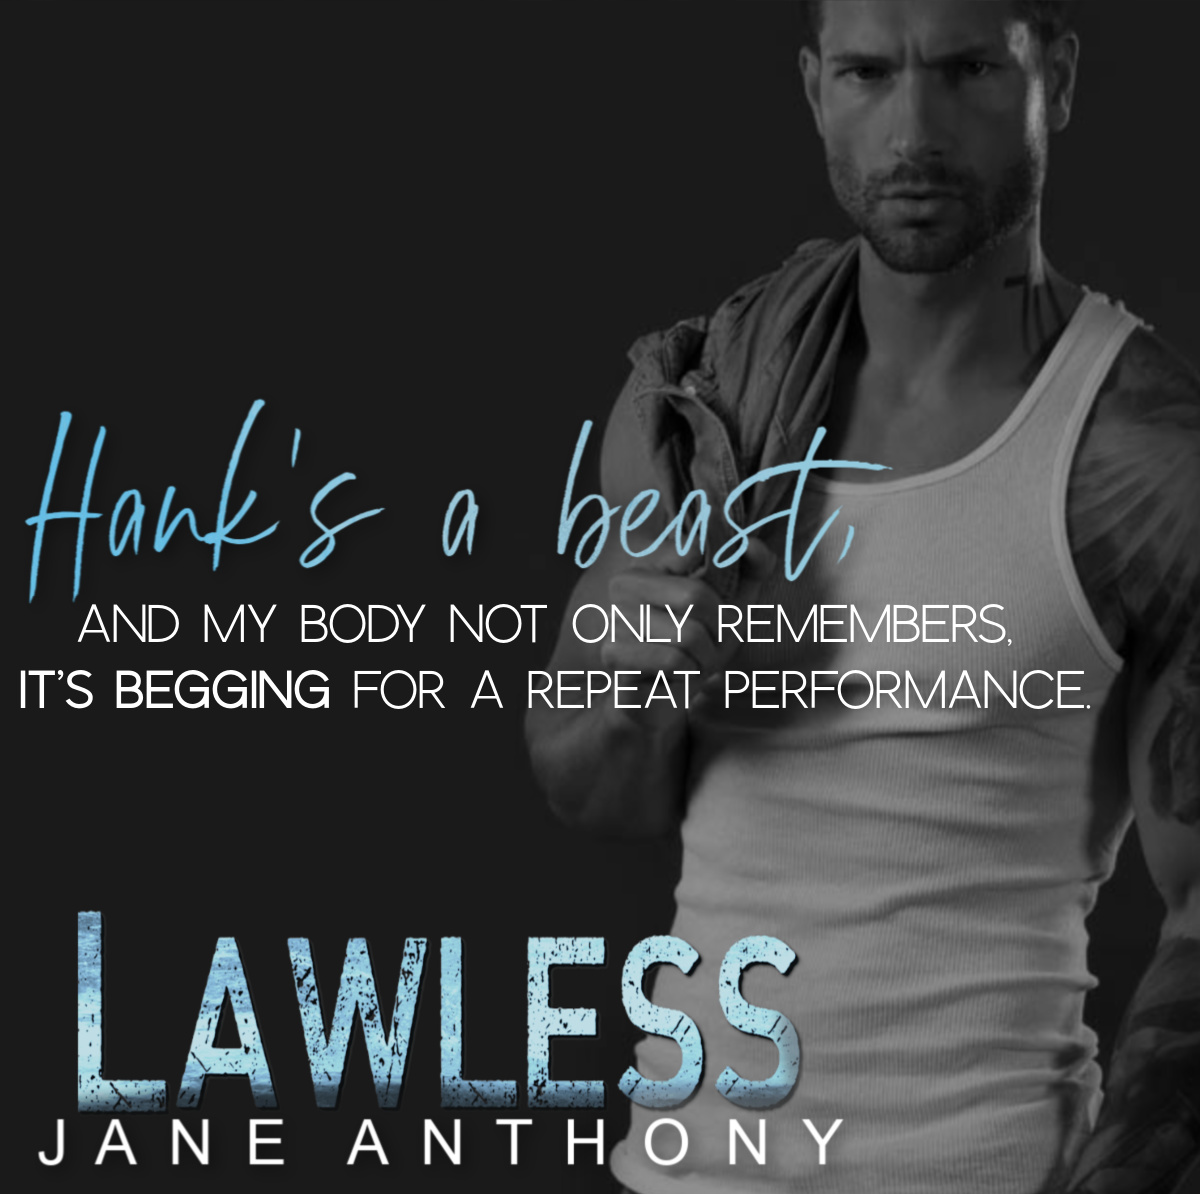 LAWLESS-3(2).jpg